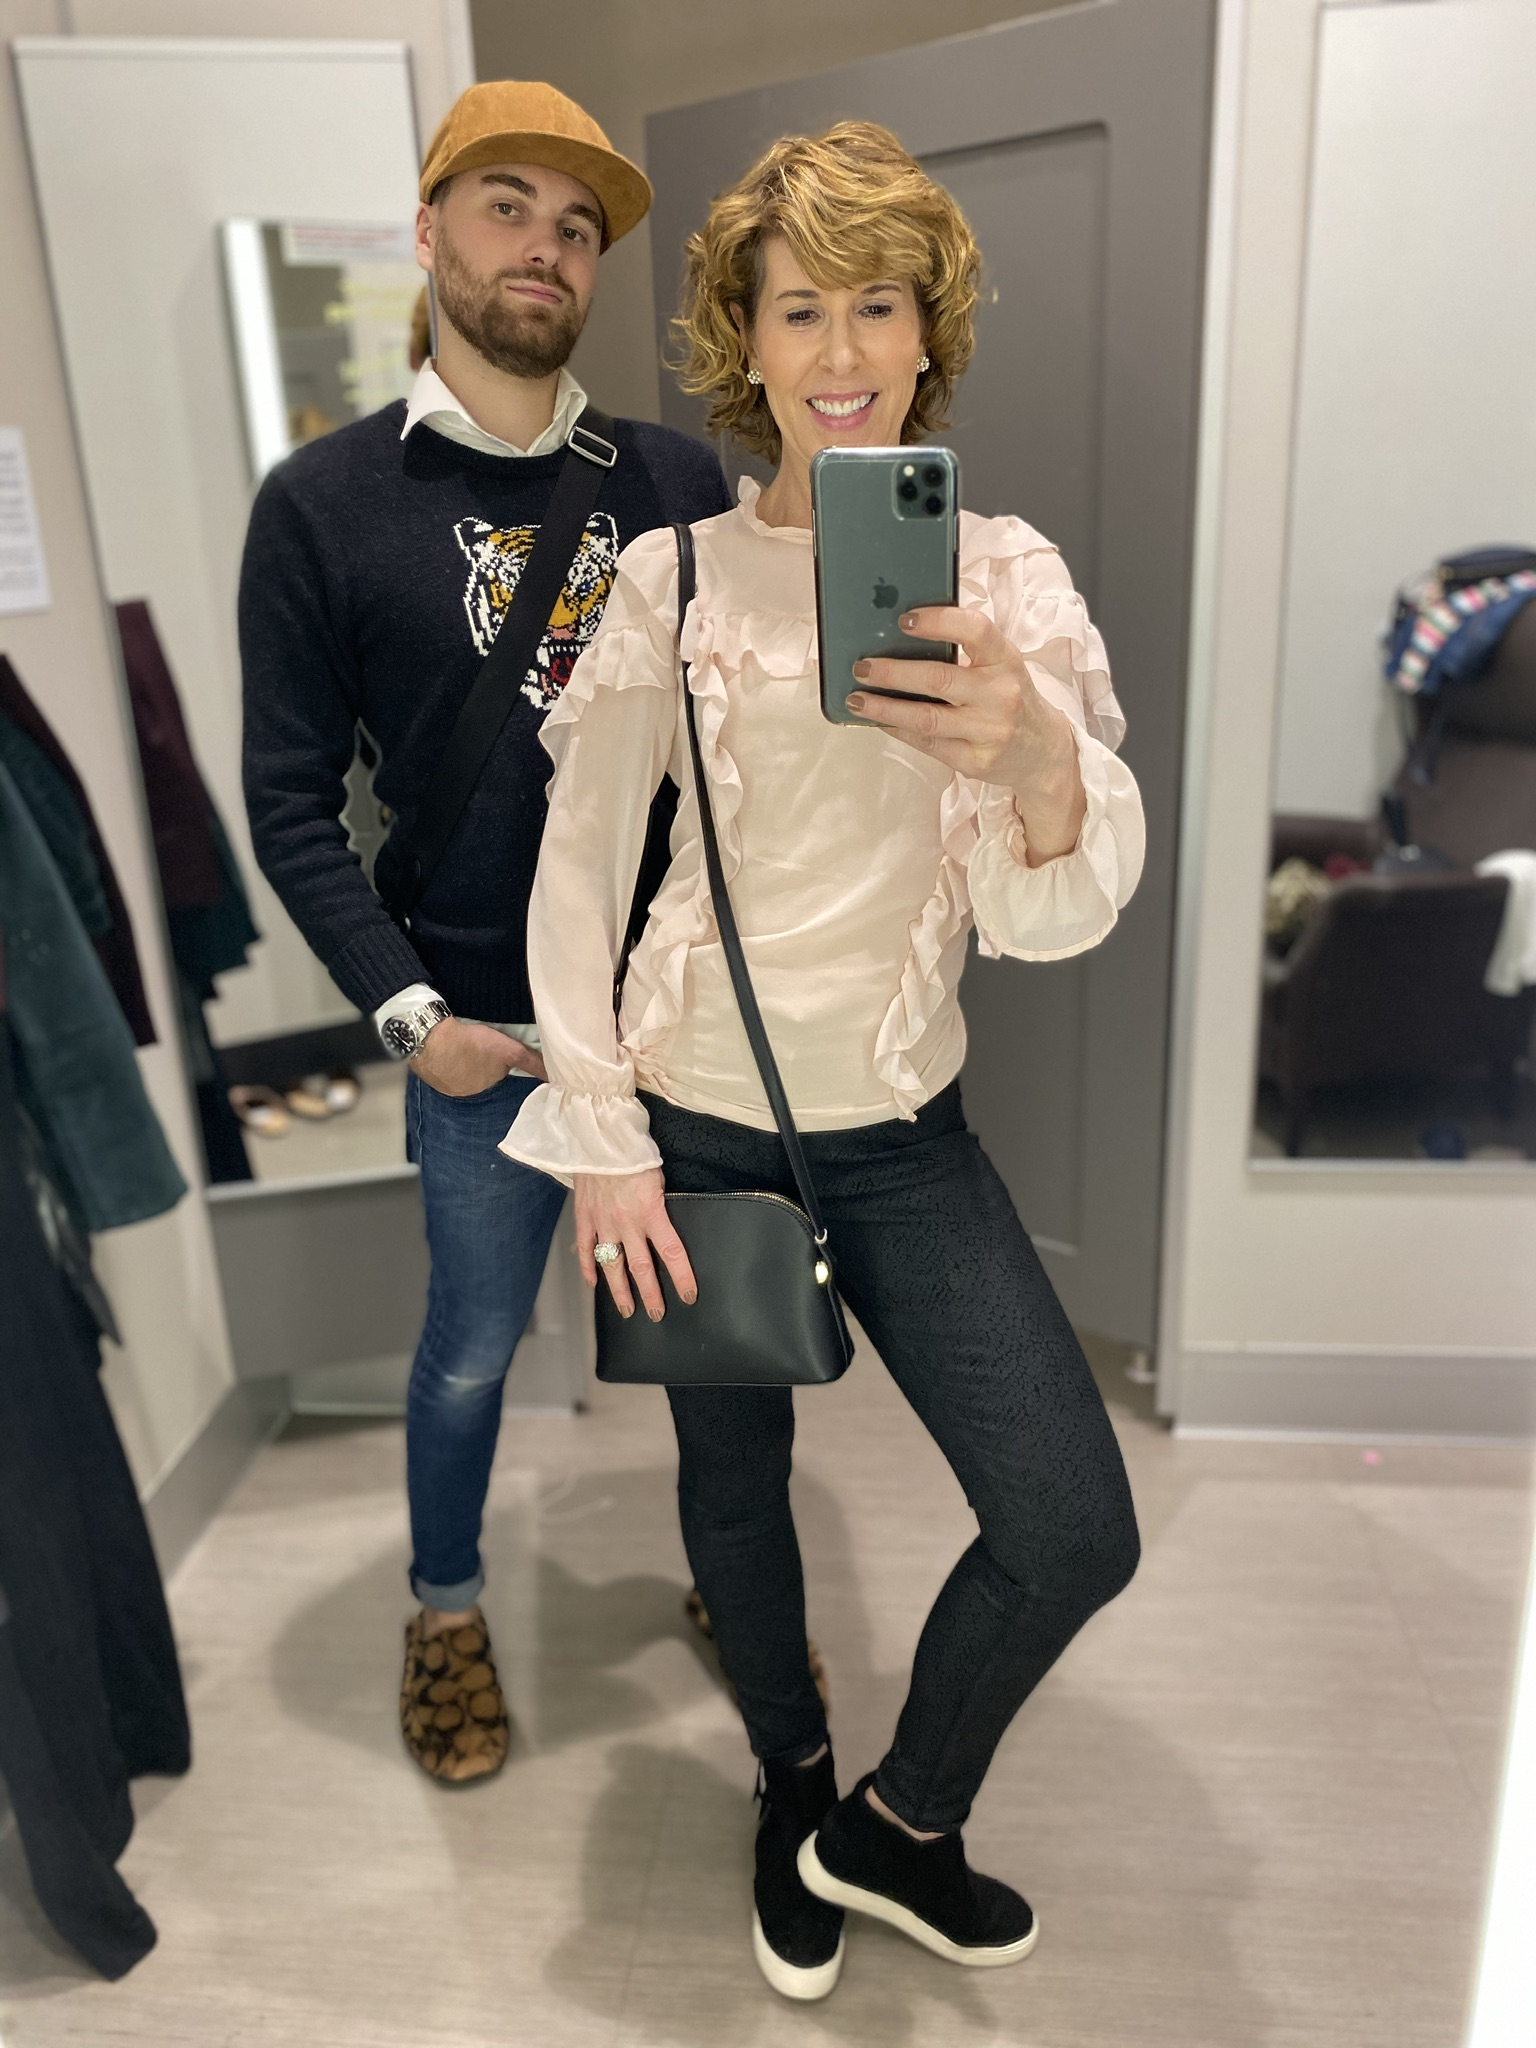 man with beard and woman in pink ruffled top and jeans taking dressing room selfie